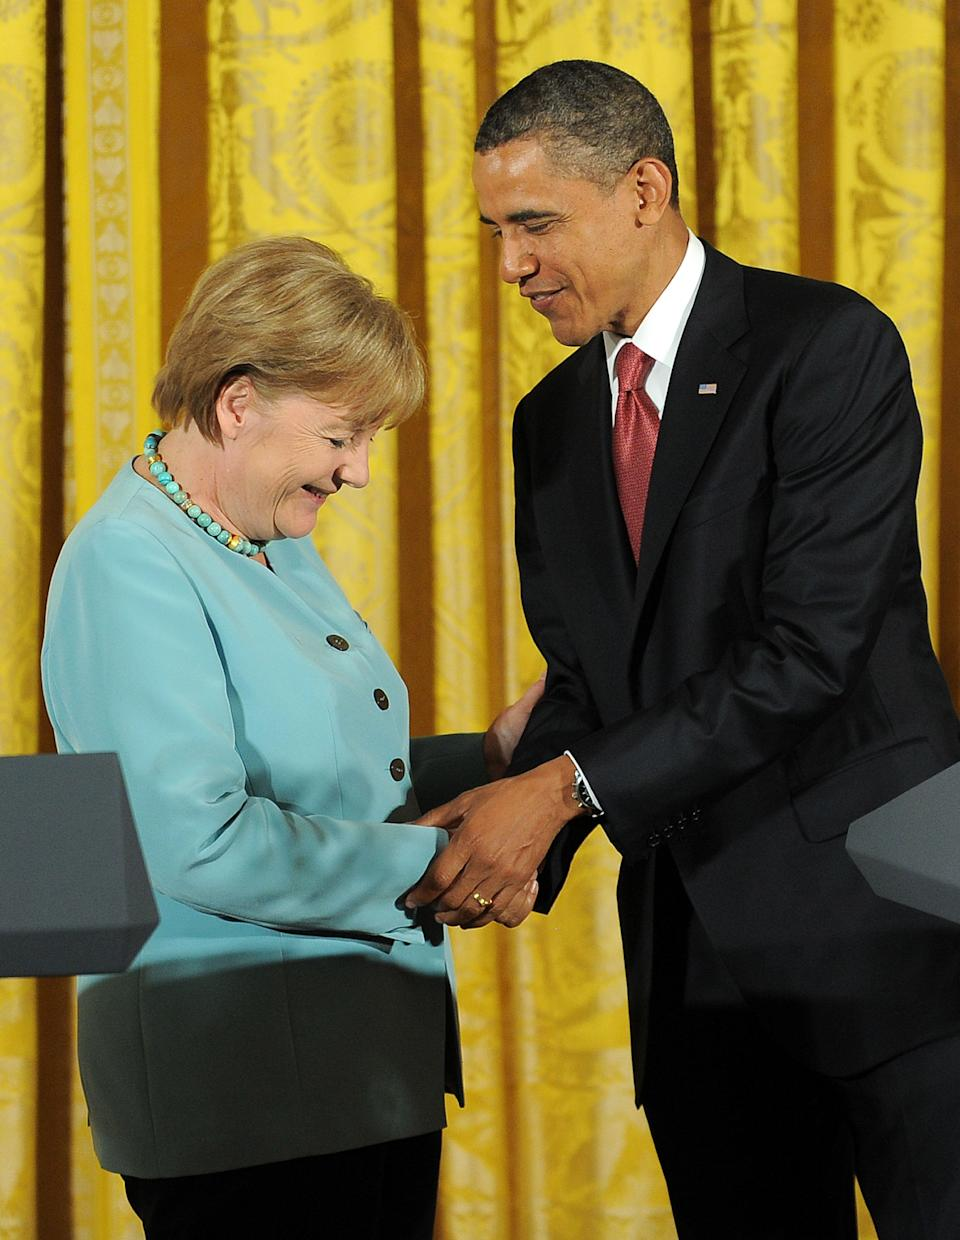 U.S. President Barack Obama shakes hands with German Chancellor Angela Merkel after a joint press conference following their meeting in the East Room of the White House in Washington, D.C., on June 7, 2011.